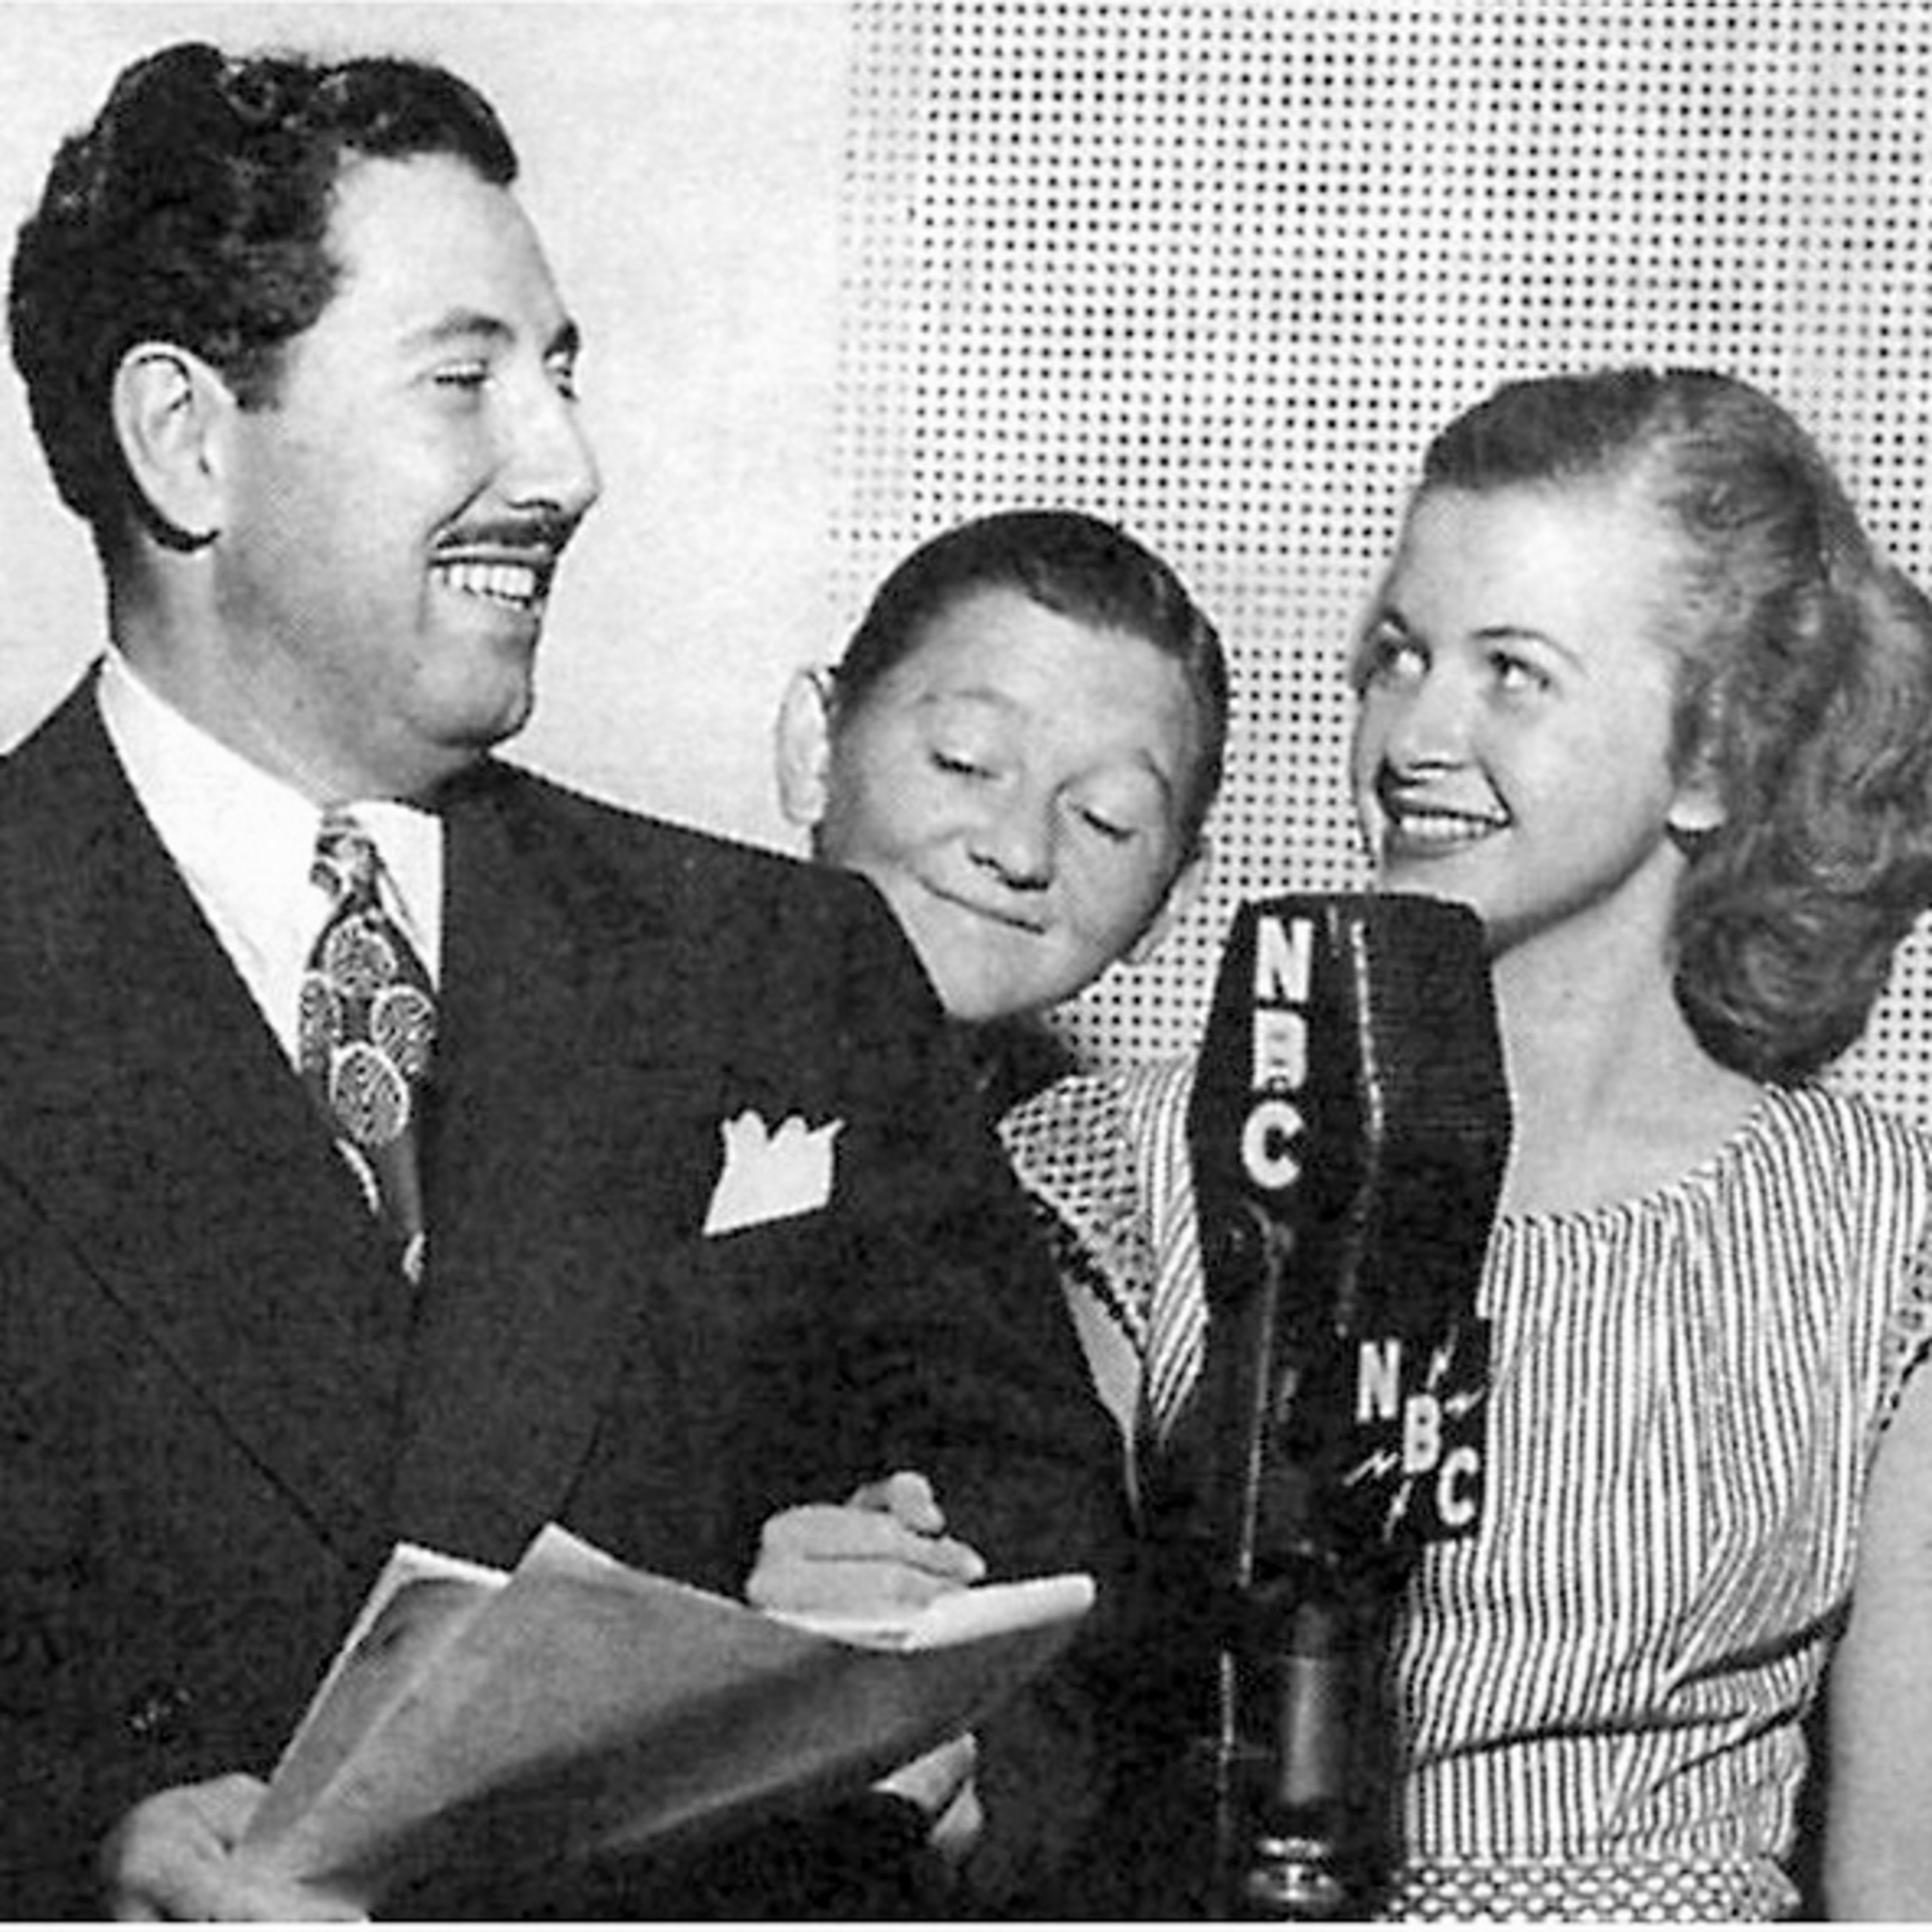 The Family Comedy Podcast - The Great Gildersleeve - Memorial Day Parade - New Neighbors - War Bond Drive